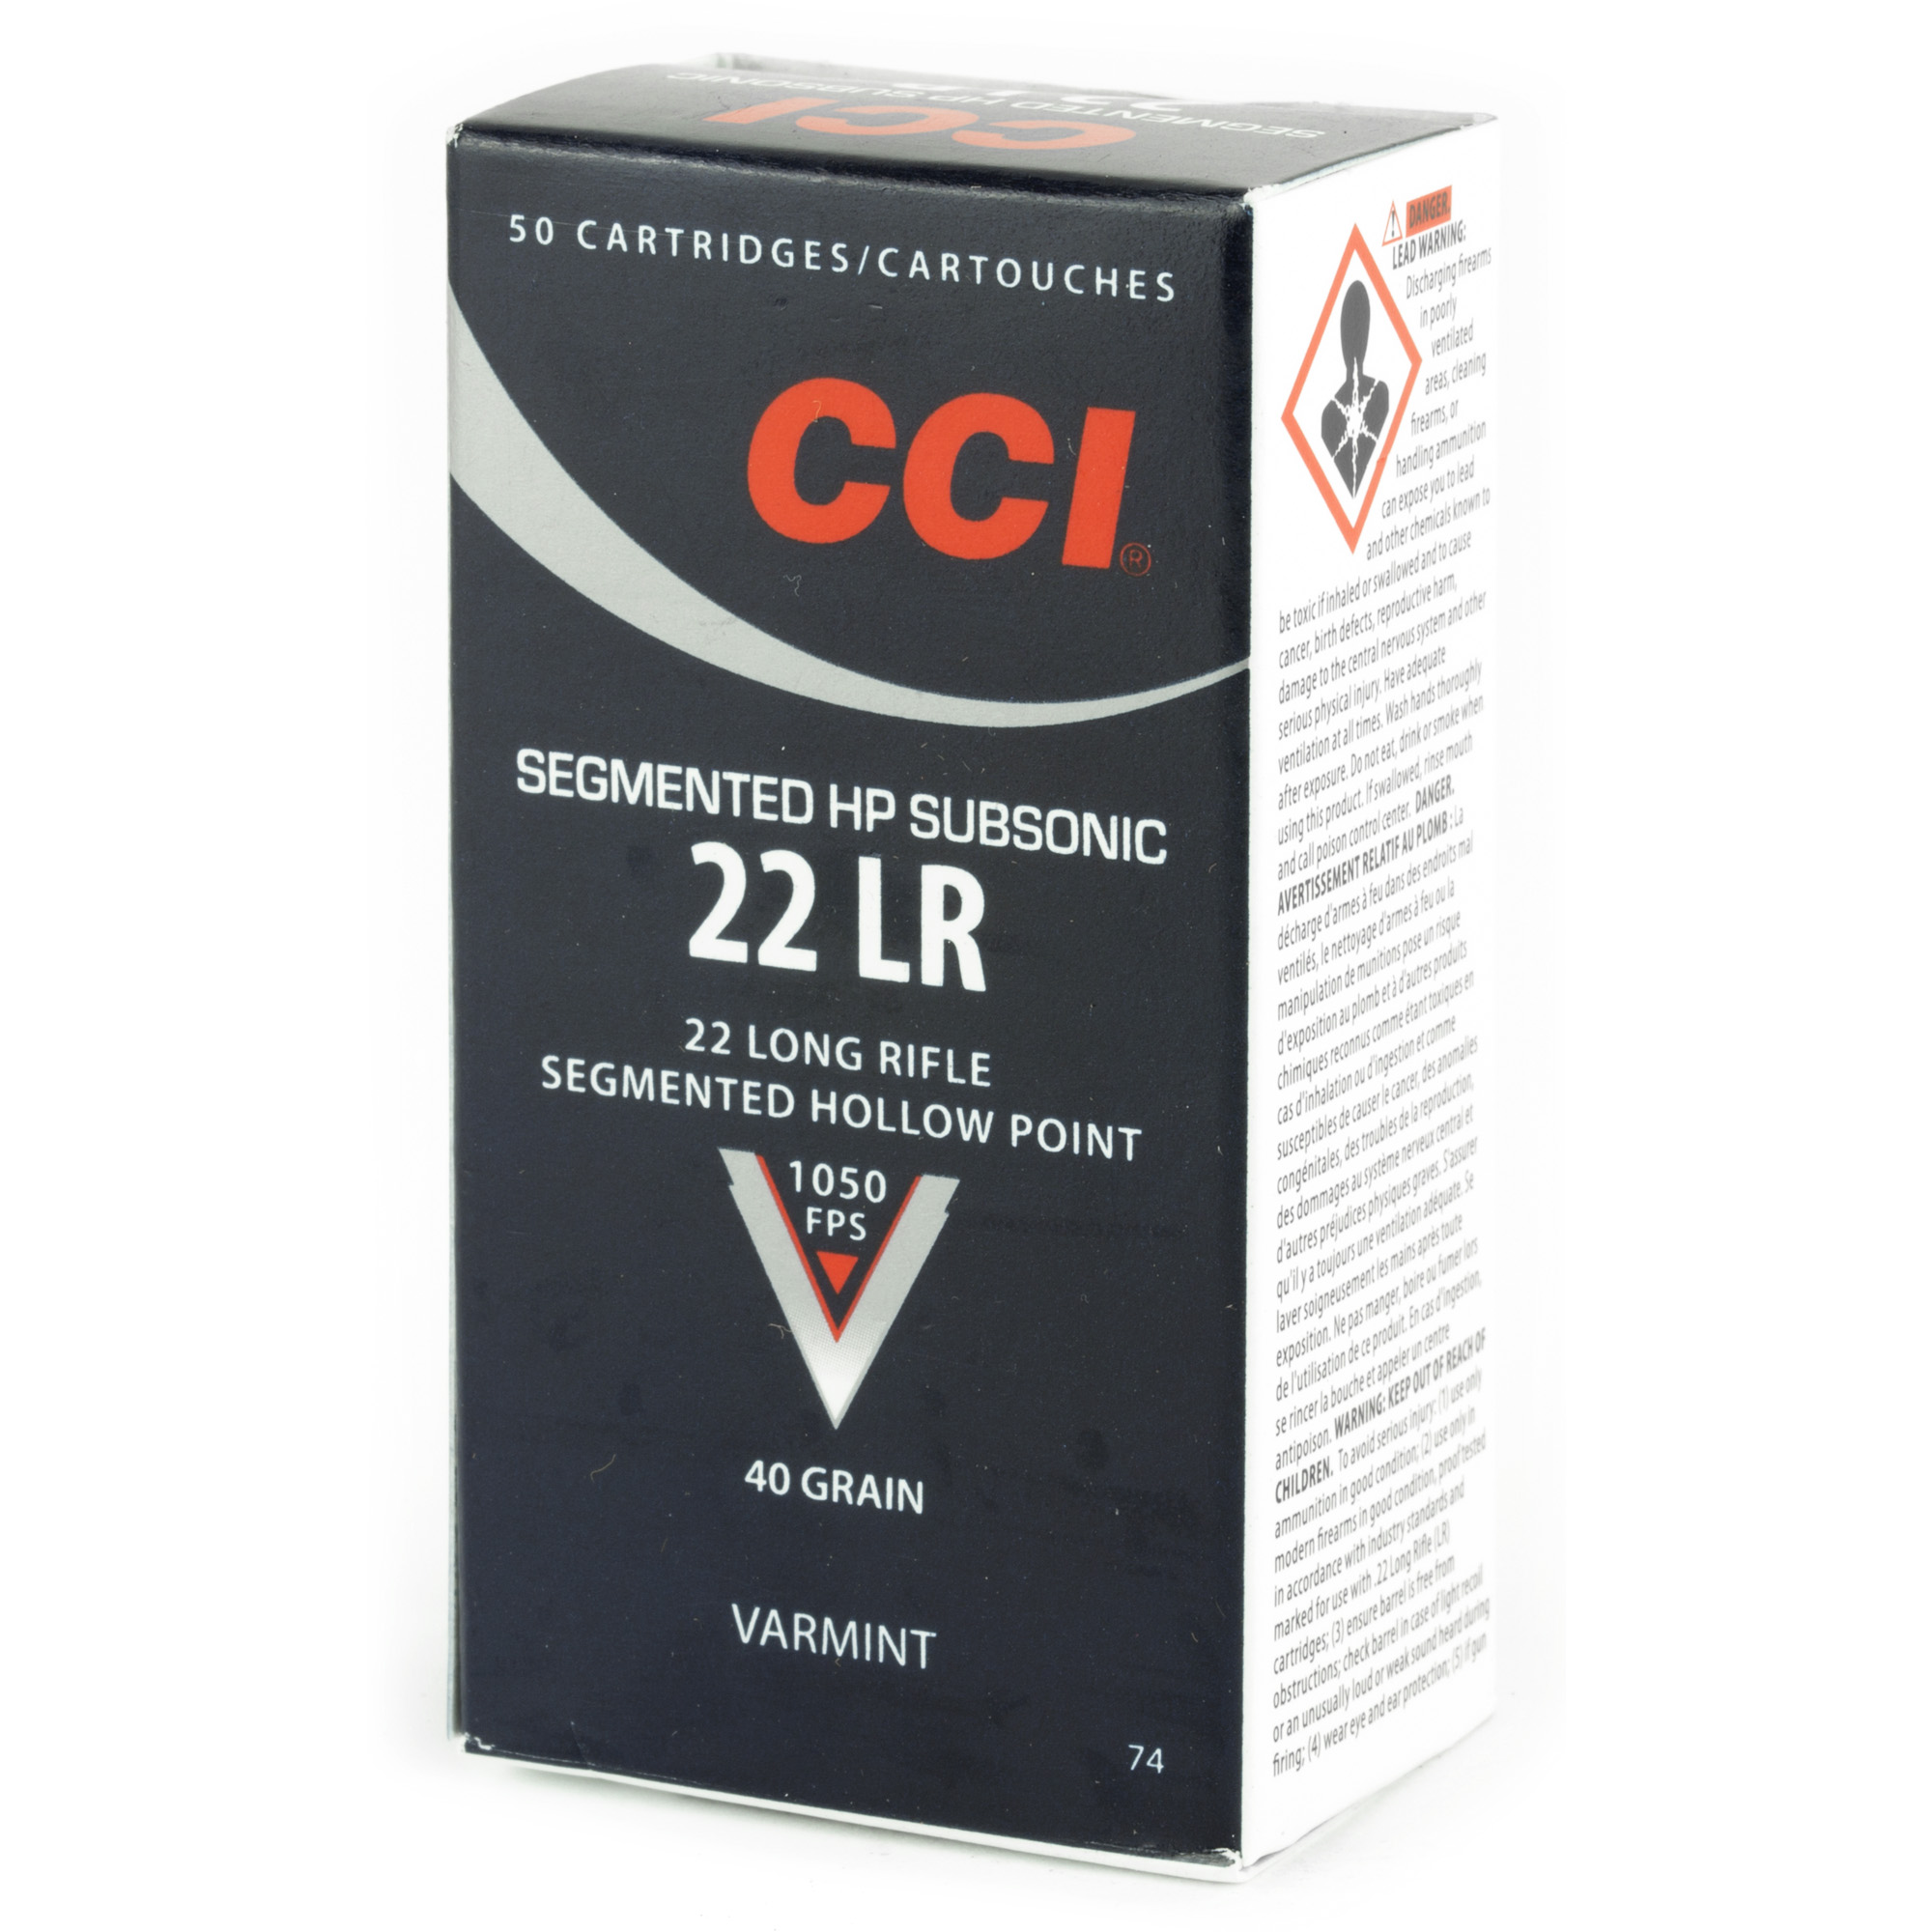 CCI 22LR Subsonic Segmented Hollow Point 40gr 50 Round Box - Trigger Depot